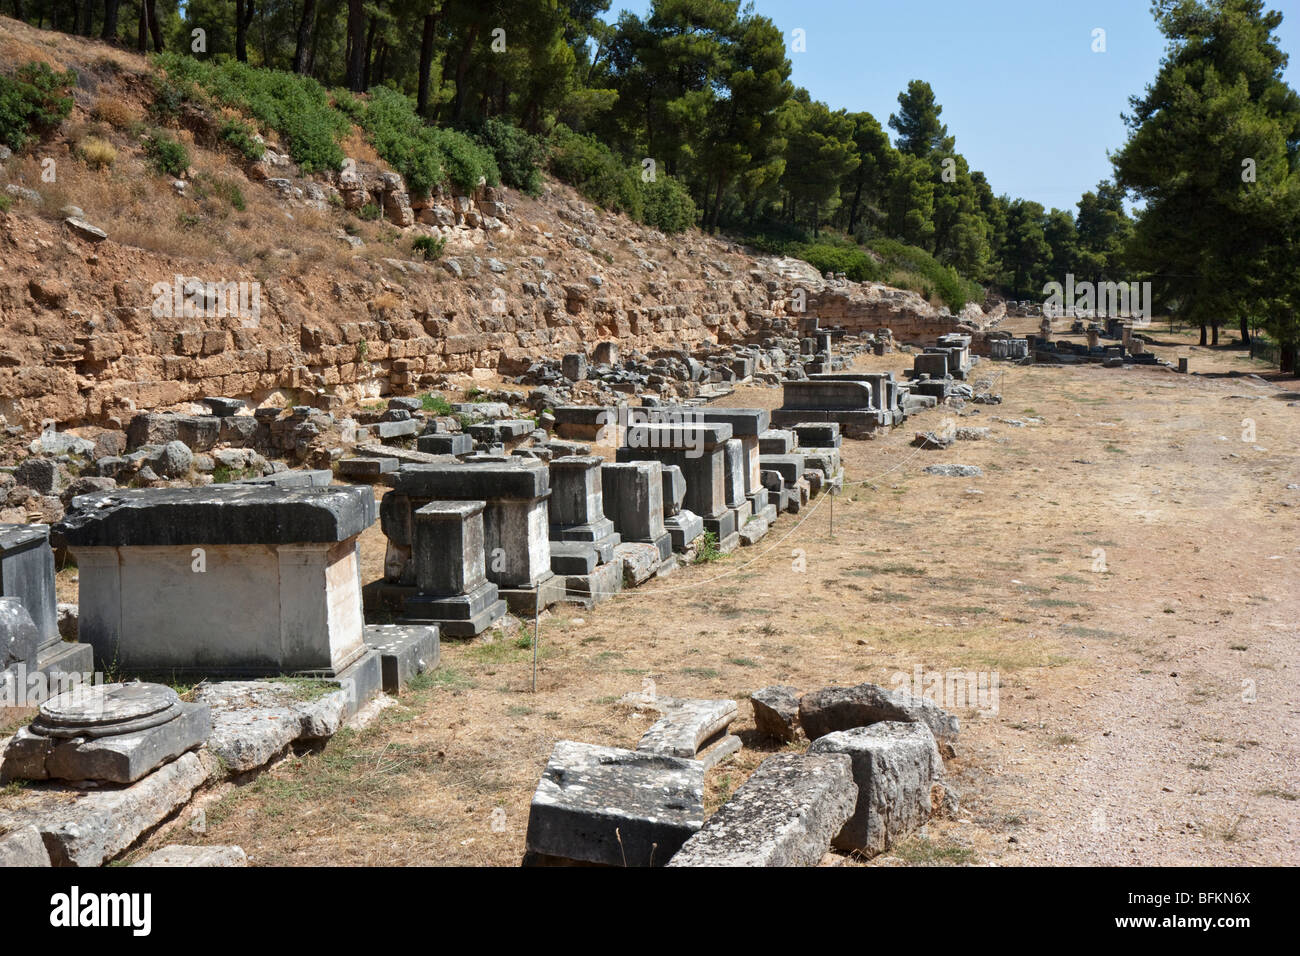 A row of statue bases at the sanctuary of Amphiaraos at ancient Oropos. - Stock Image